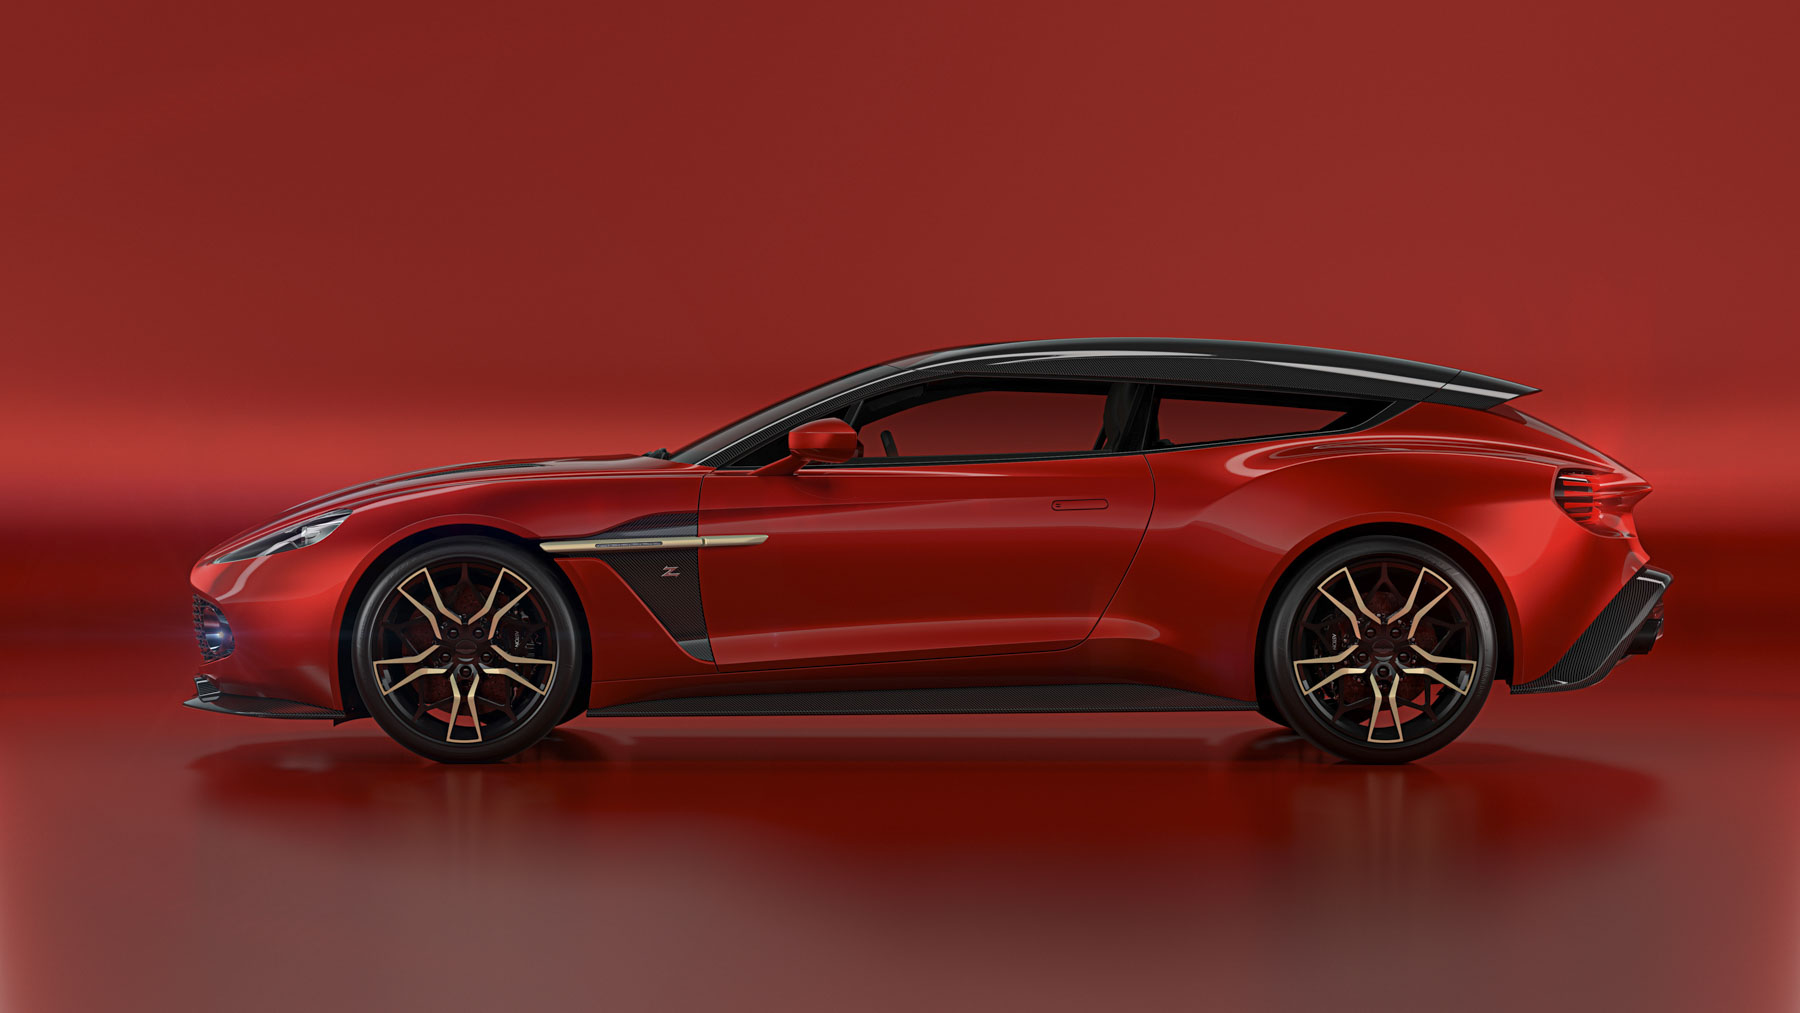 2018 Aston Martin Vanquish Zagato Shooting Brake Top Speed